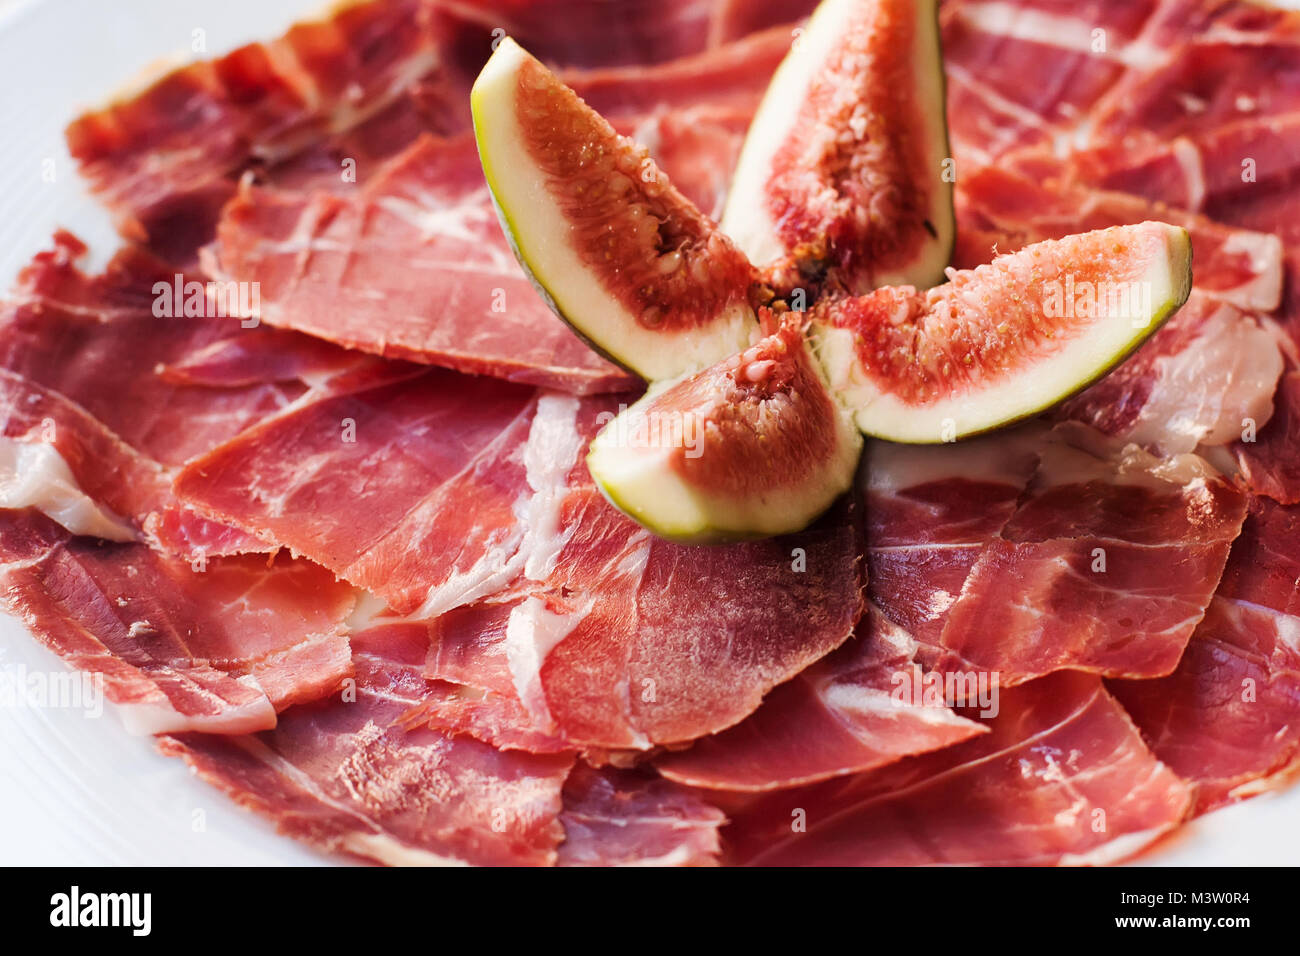 Spanish Cuisine tapas food Jamon with fig. Beautiful appetite slices of raw pork meat, white plate background. - Stock Image